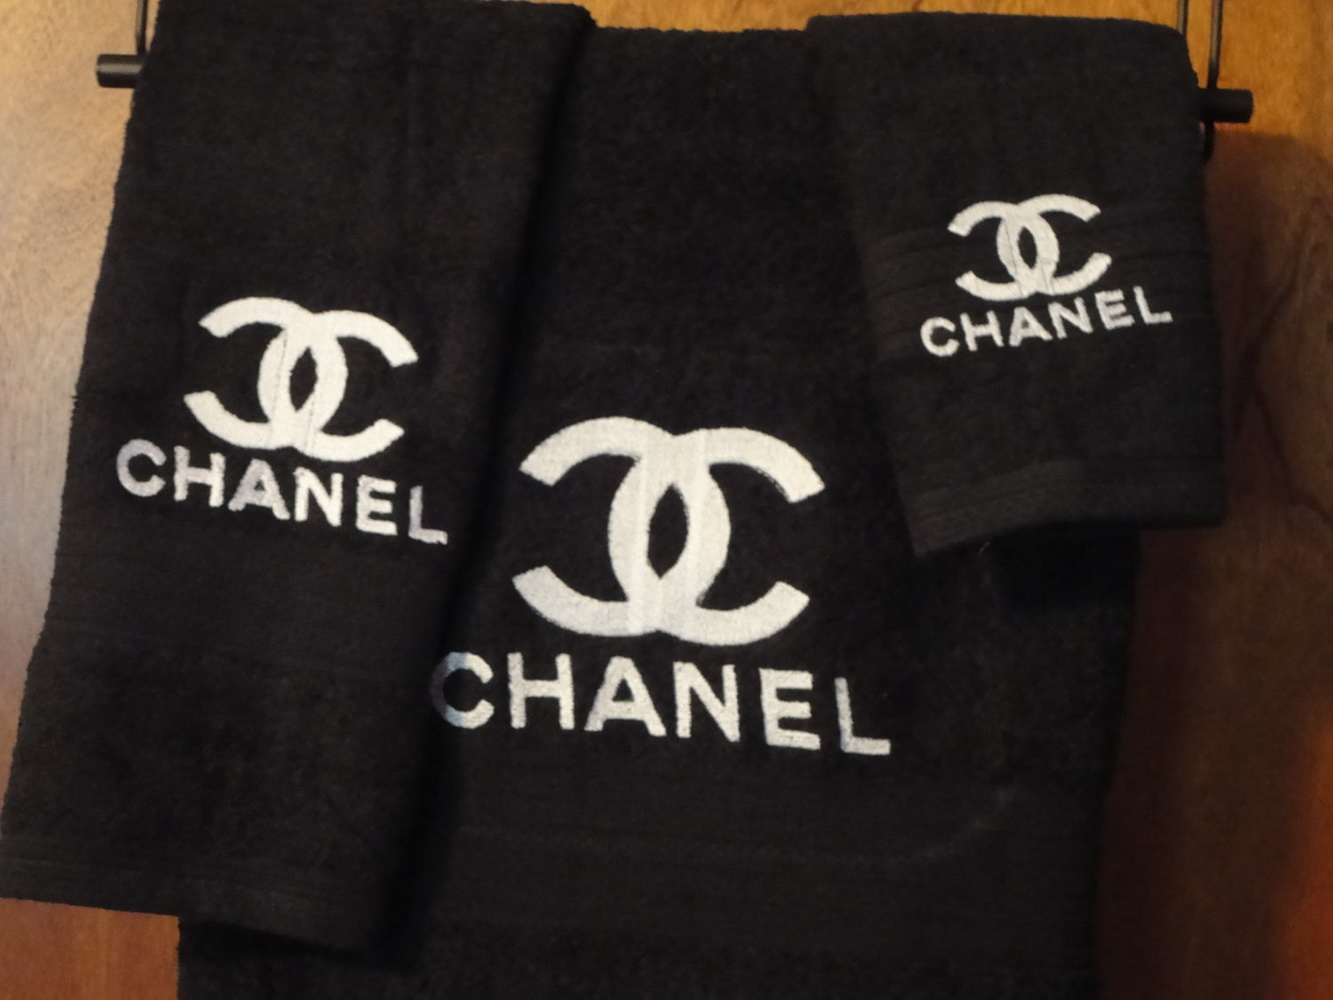 Сhanel logo on towel embroidered